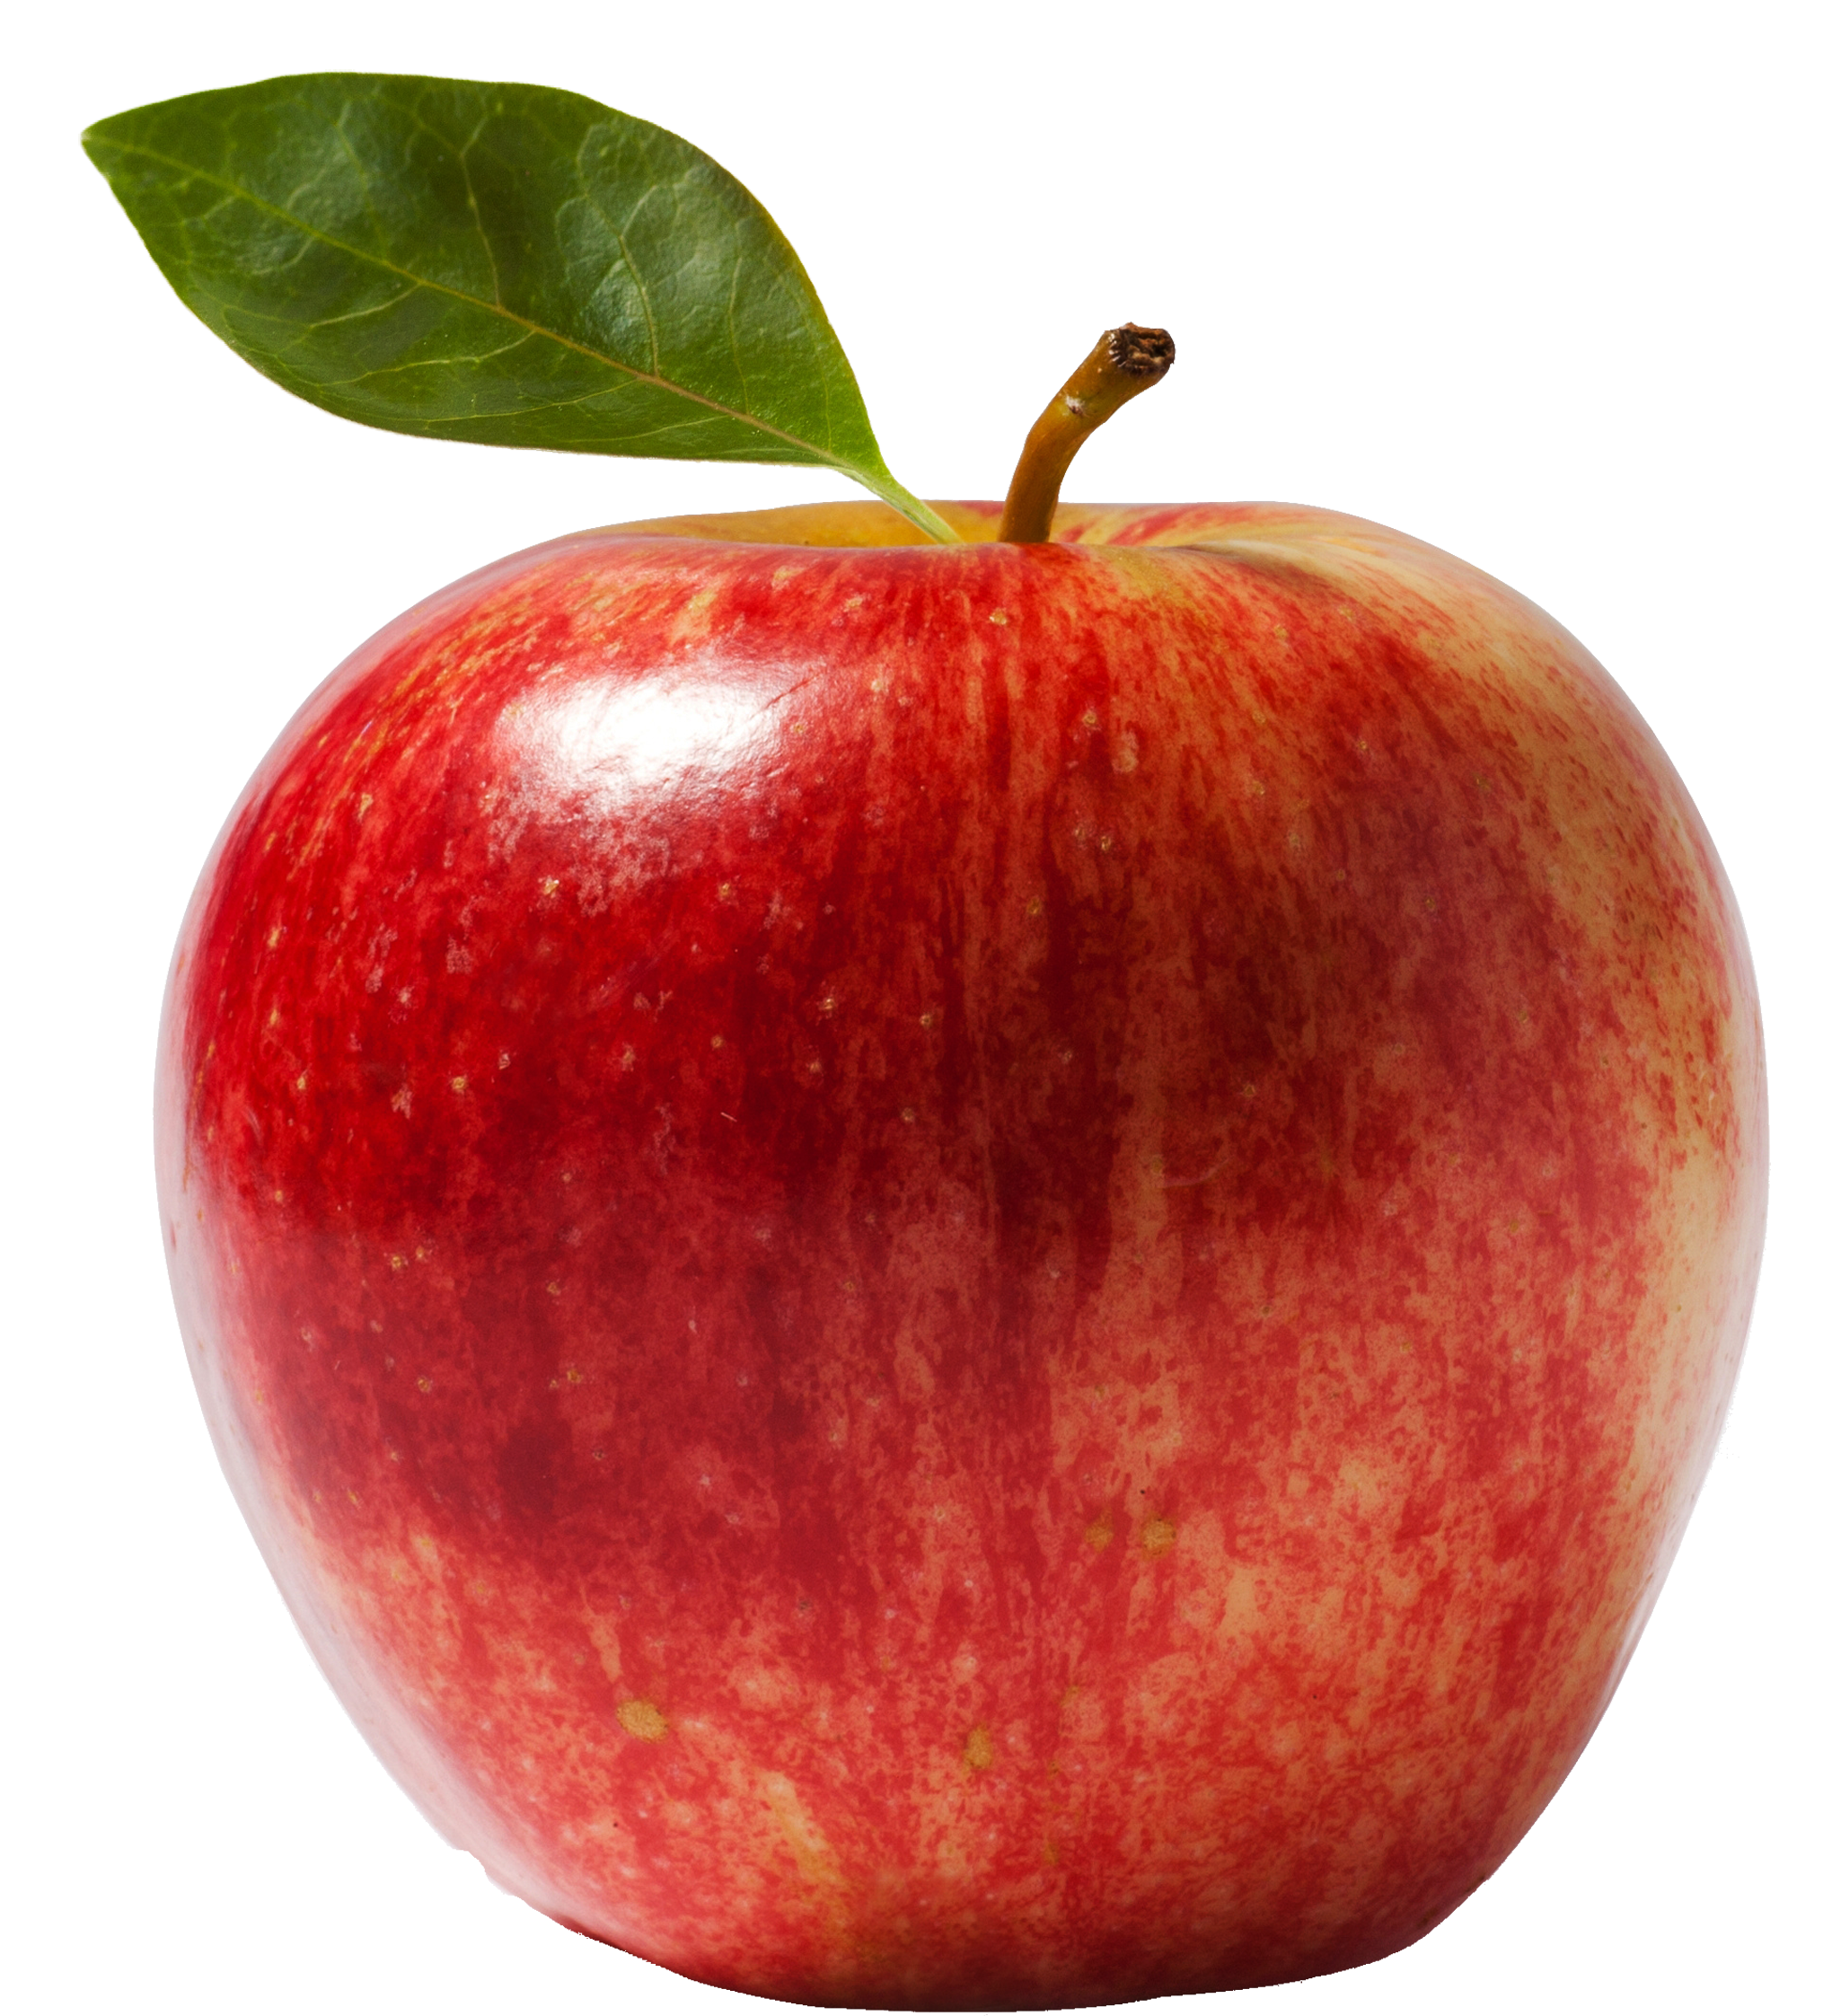 Apple sprout clipart picture free Plant Cells on emaze picture free